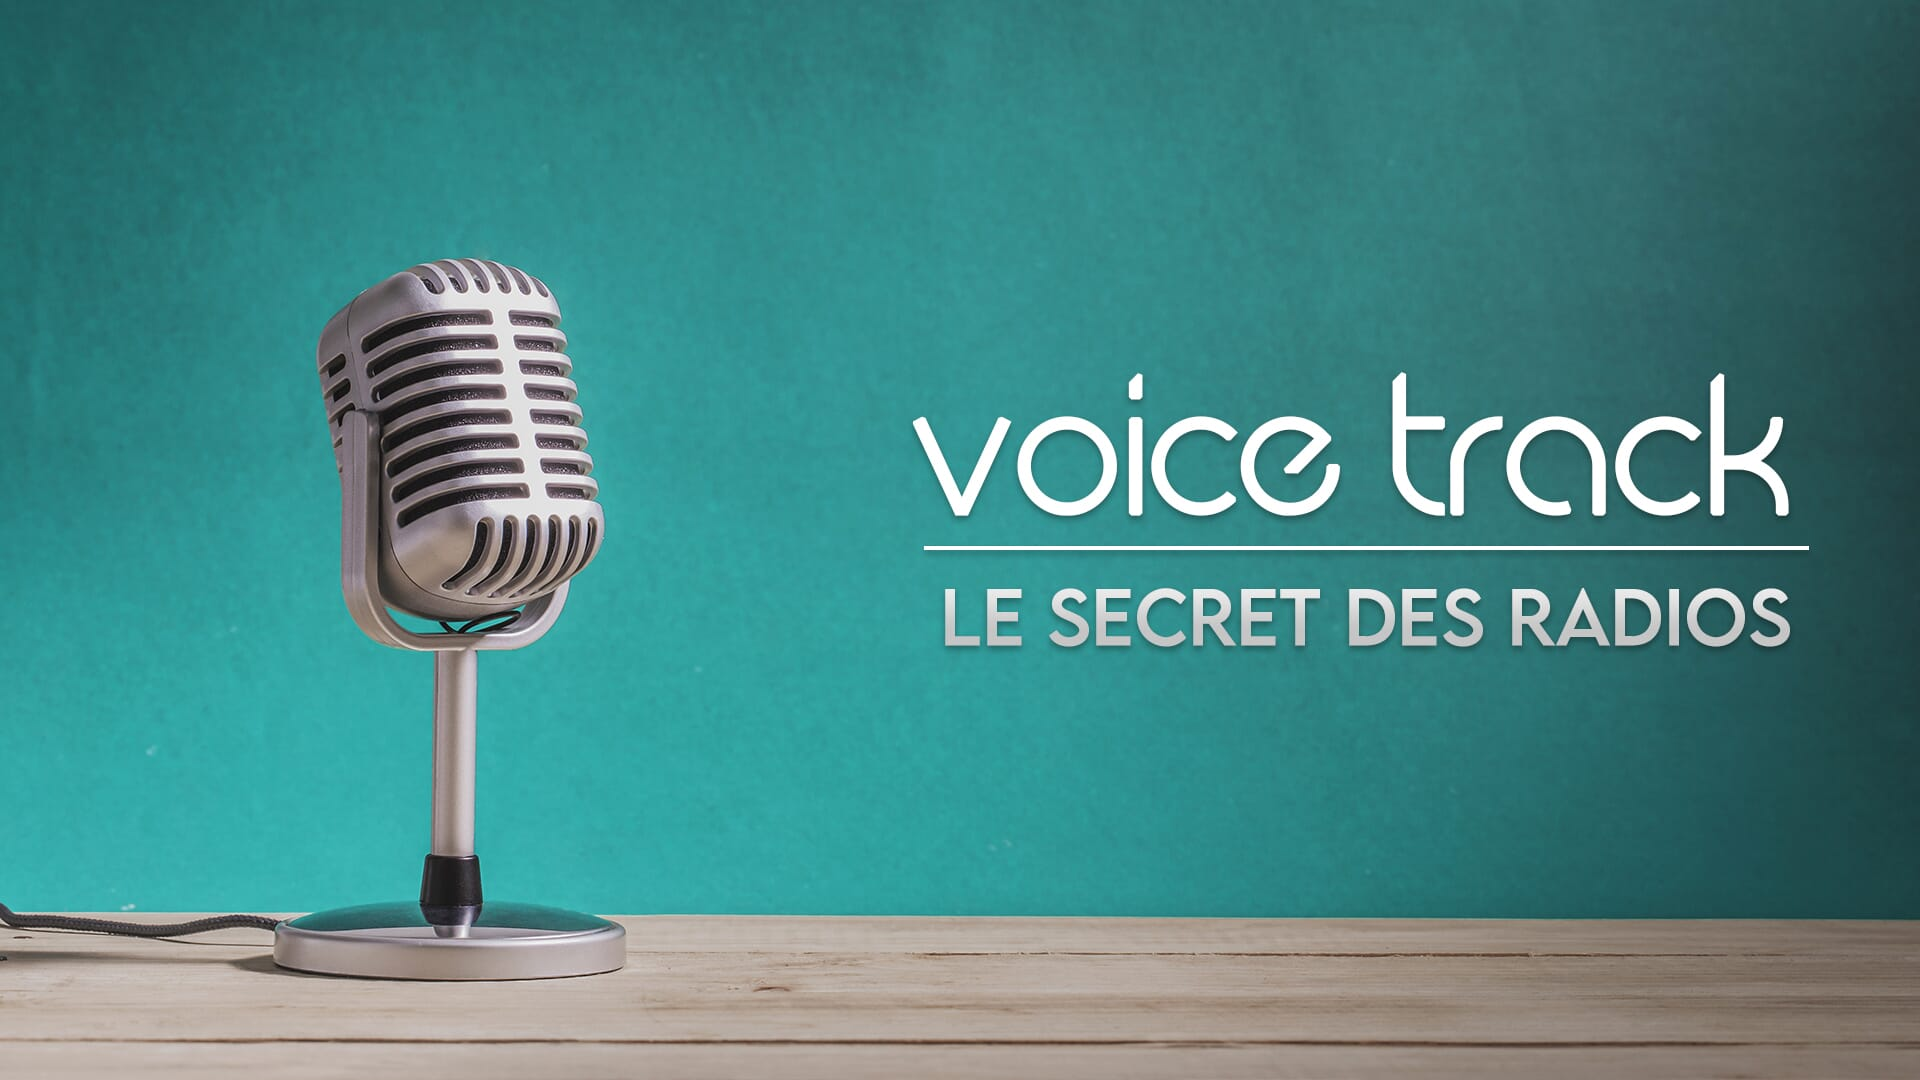 Voice Track le secret des radios